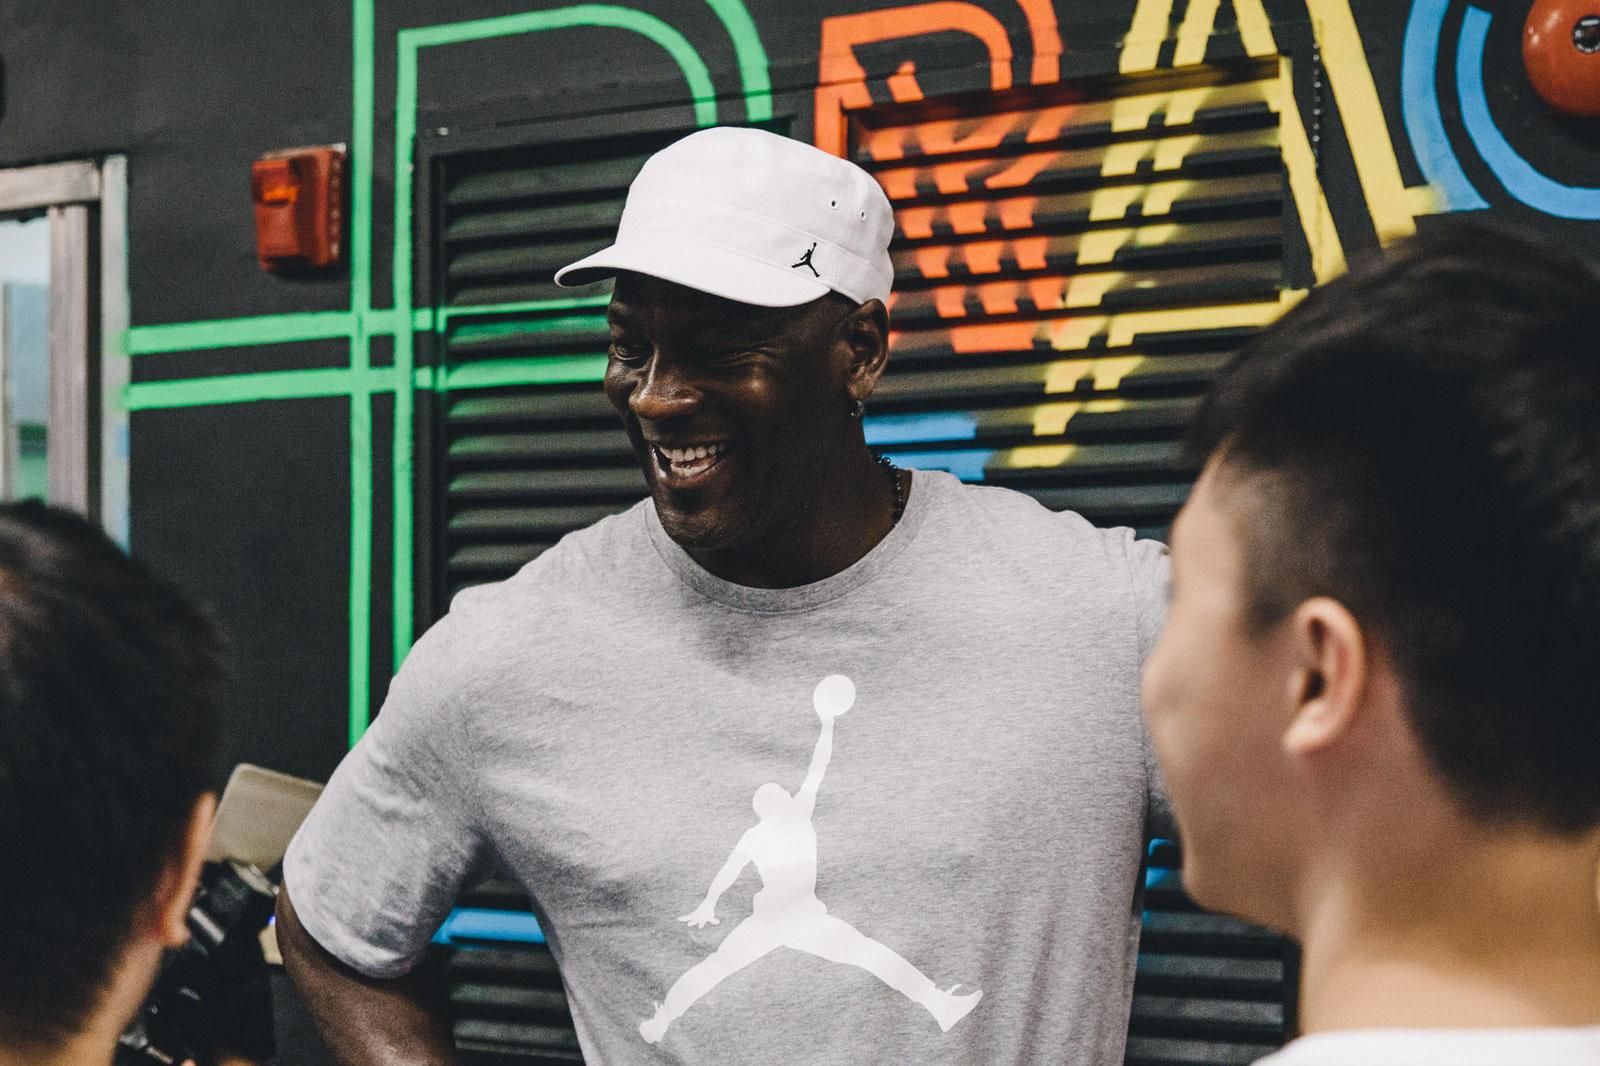 Michael Jordan's Wearing a Pair of Js That Haven't Come Out Yet